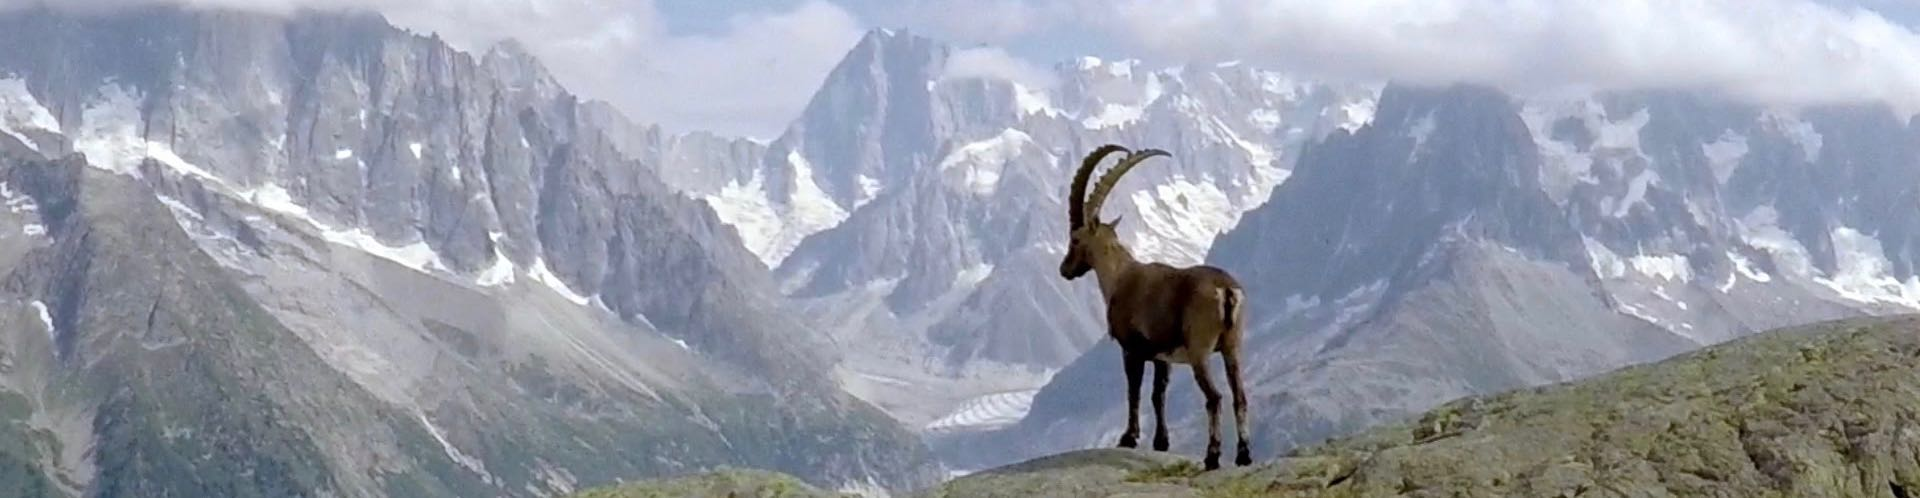 Alpine-Ibex-Stalking-Mountain-Hunting